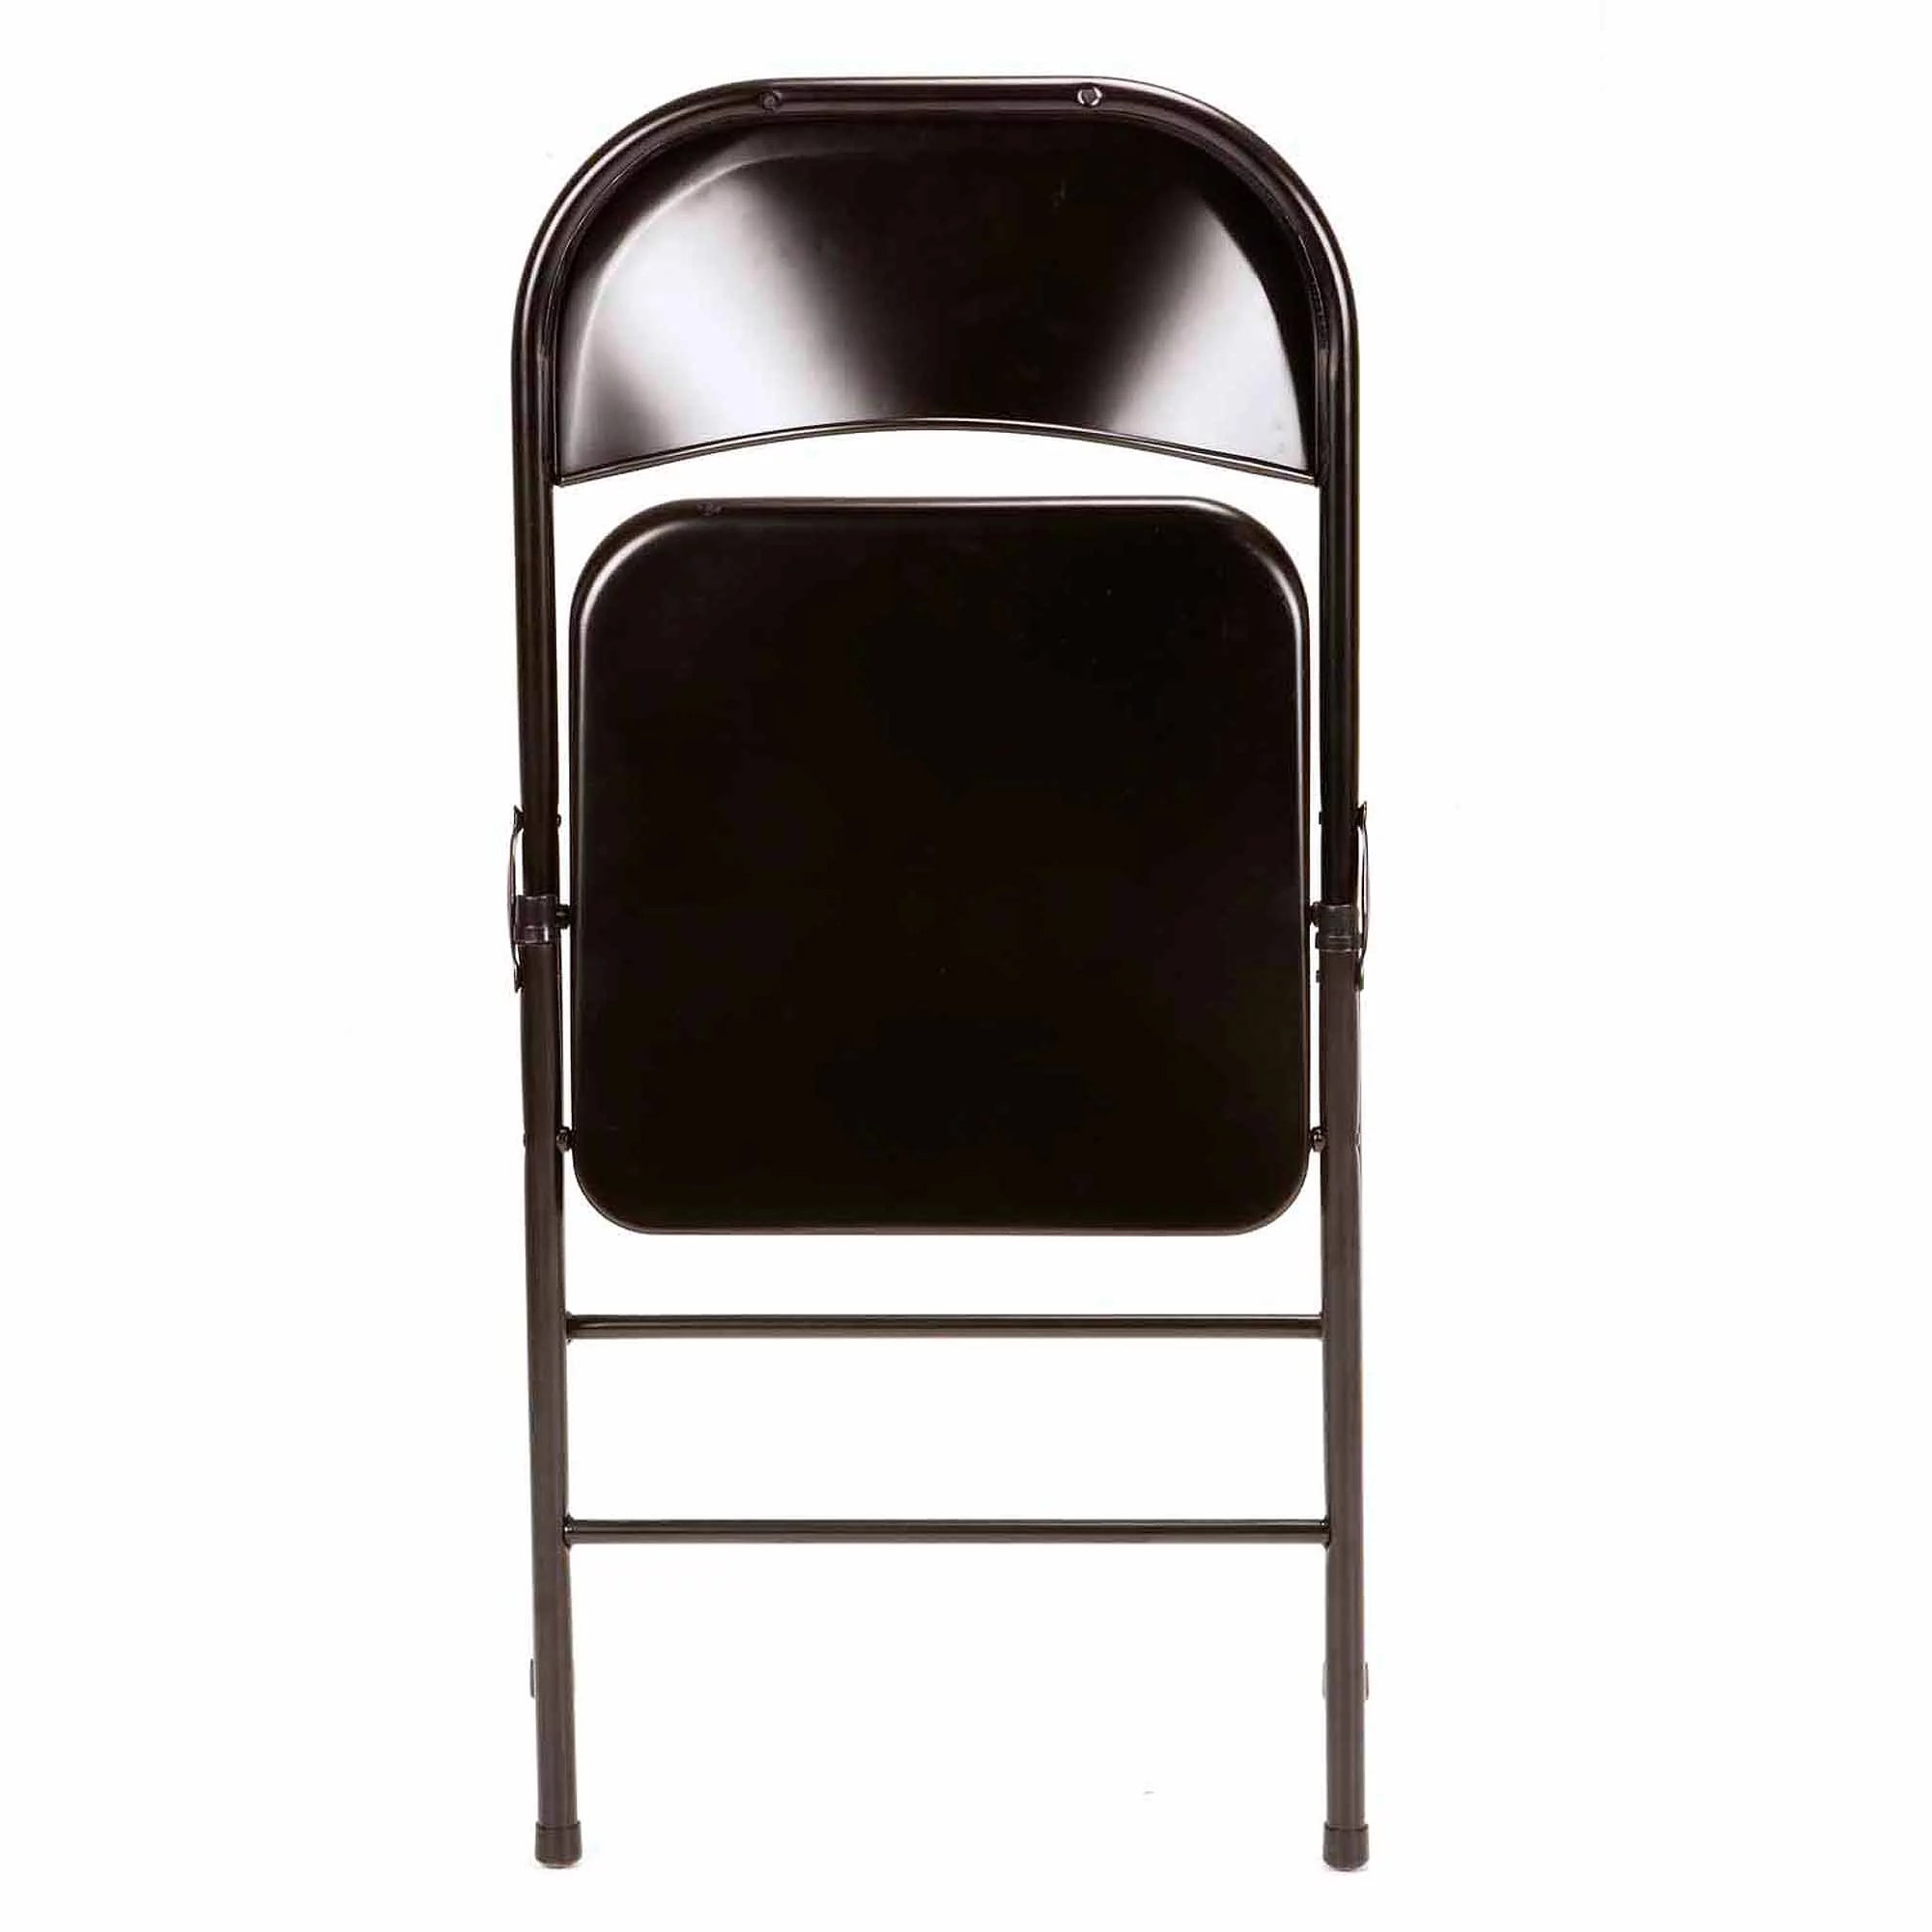 Steel Folding Chair Folding Metal Chairs Set Of 4 Seats Steel Black Party